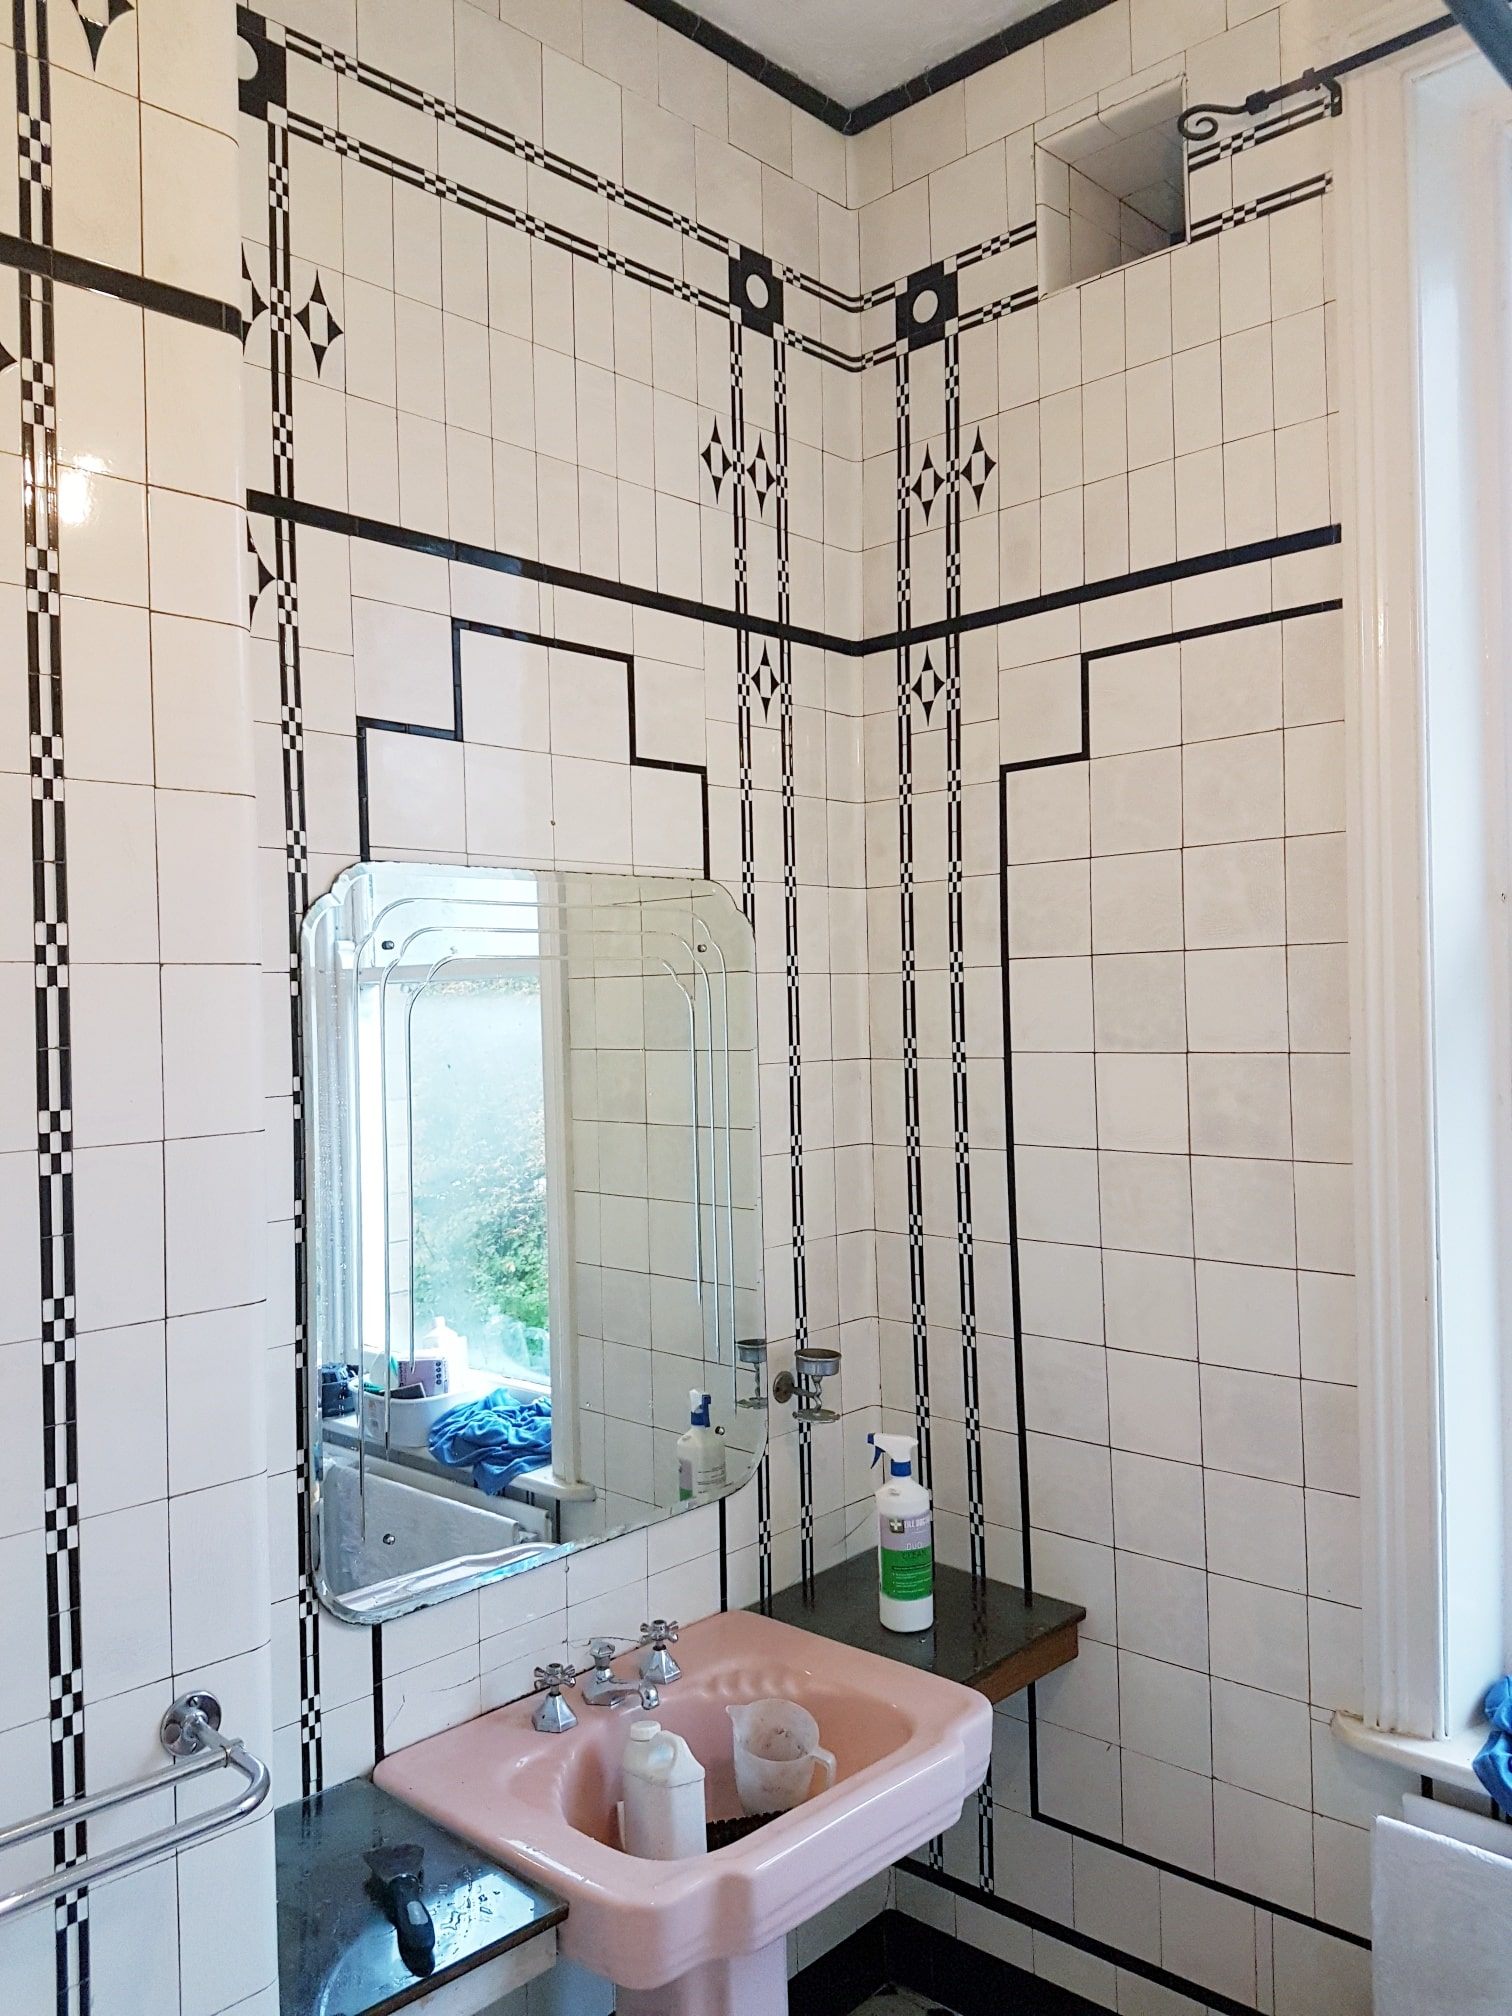 1940 Period Ceramic Tiled Art Deco Bathroom Afer Cleaning Leeds